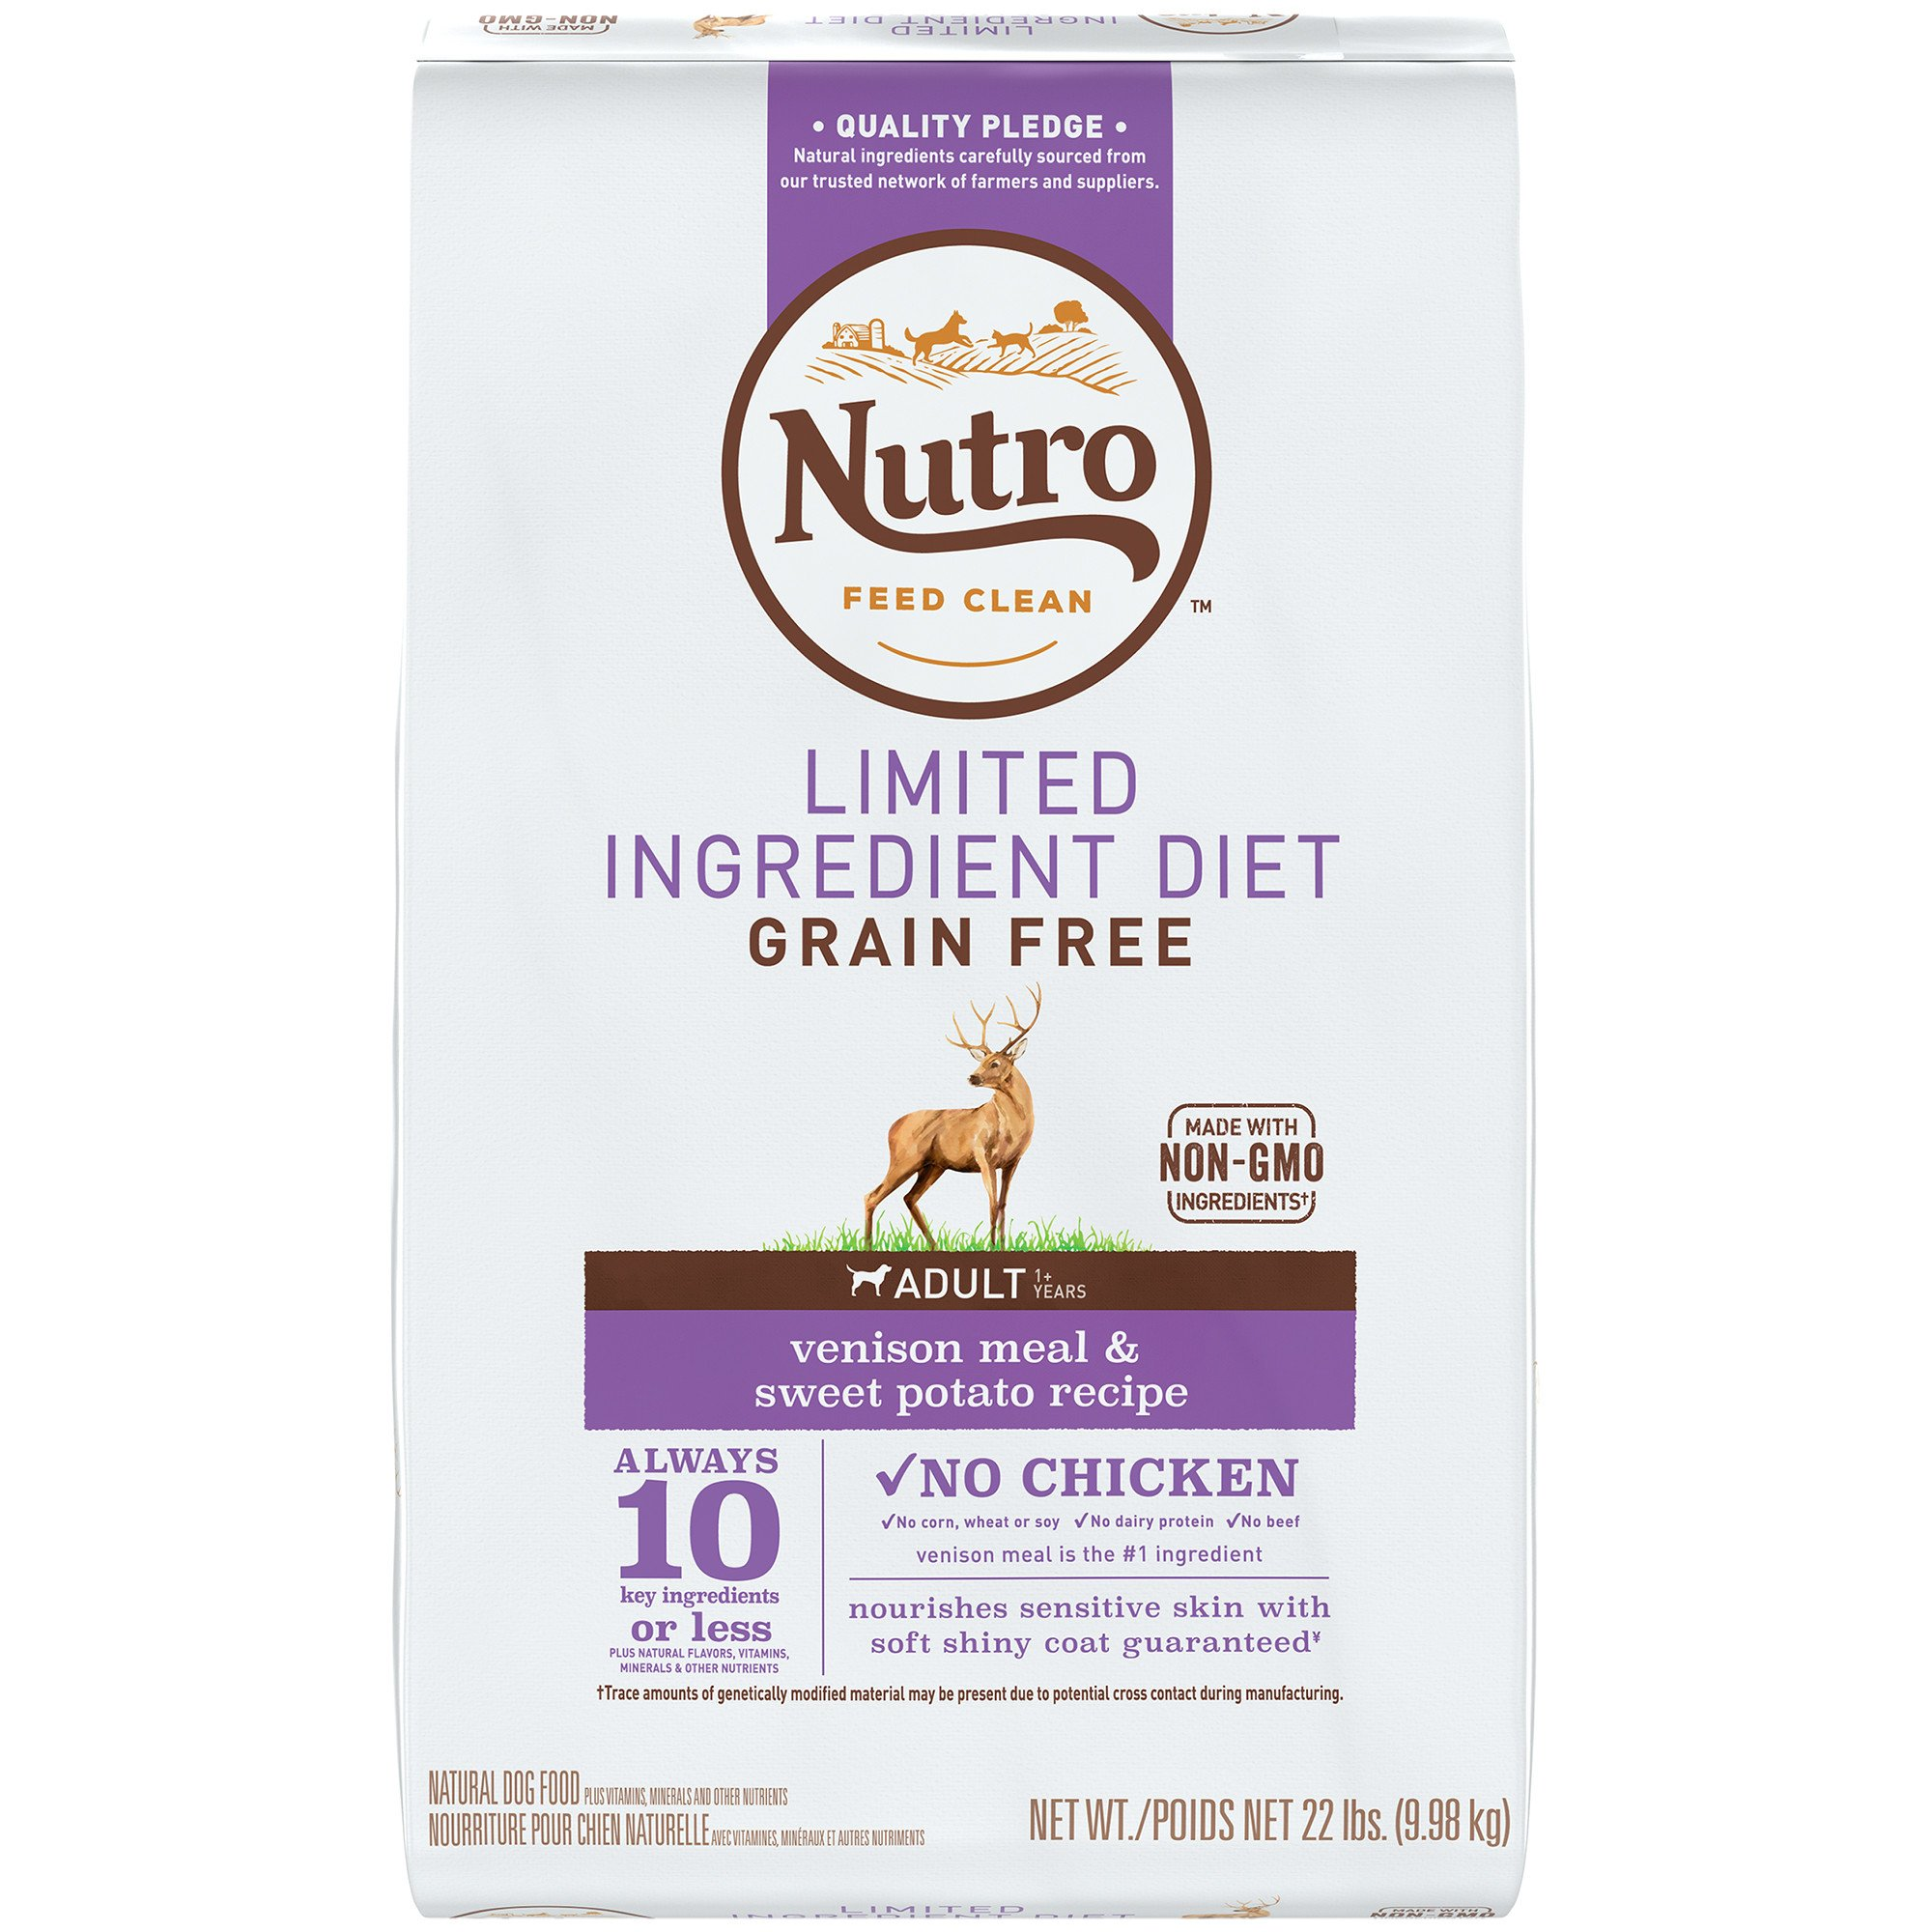 Nutro Limited Ingredient Diet Venison Meal Sweet Potato Recipe